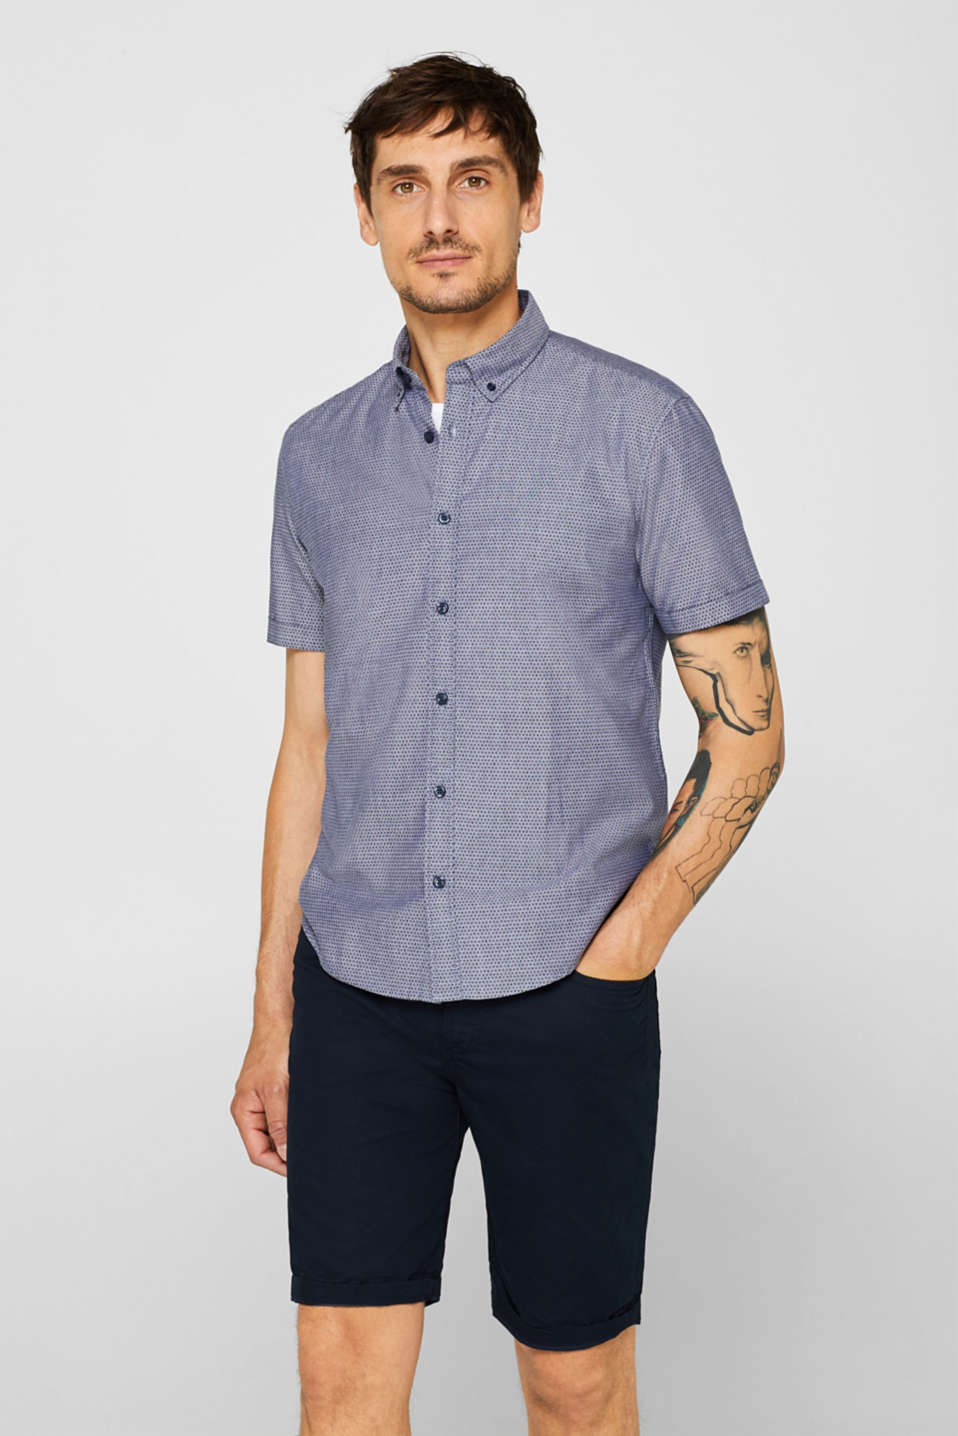 edc - Short-sleeved shirt with an all-over print, 100% cotton